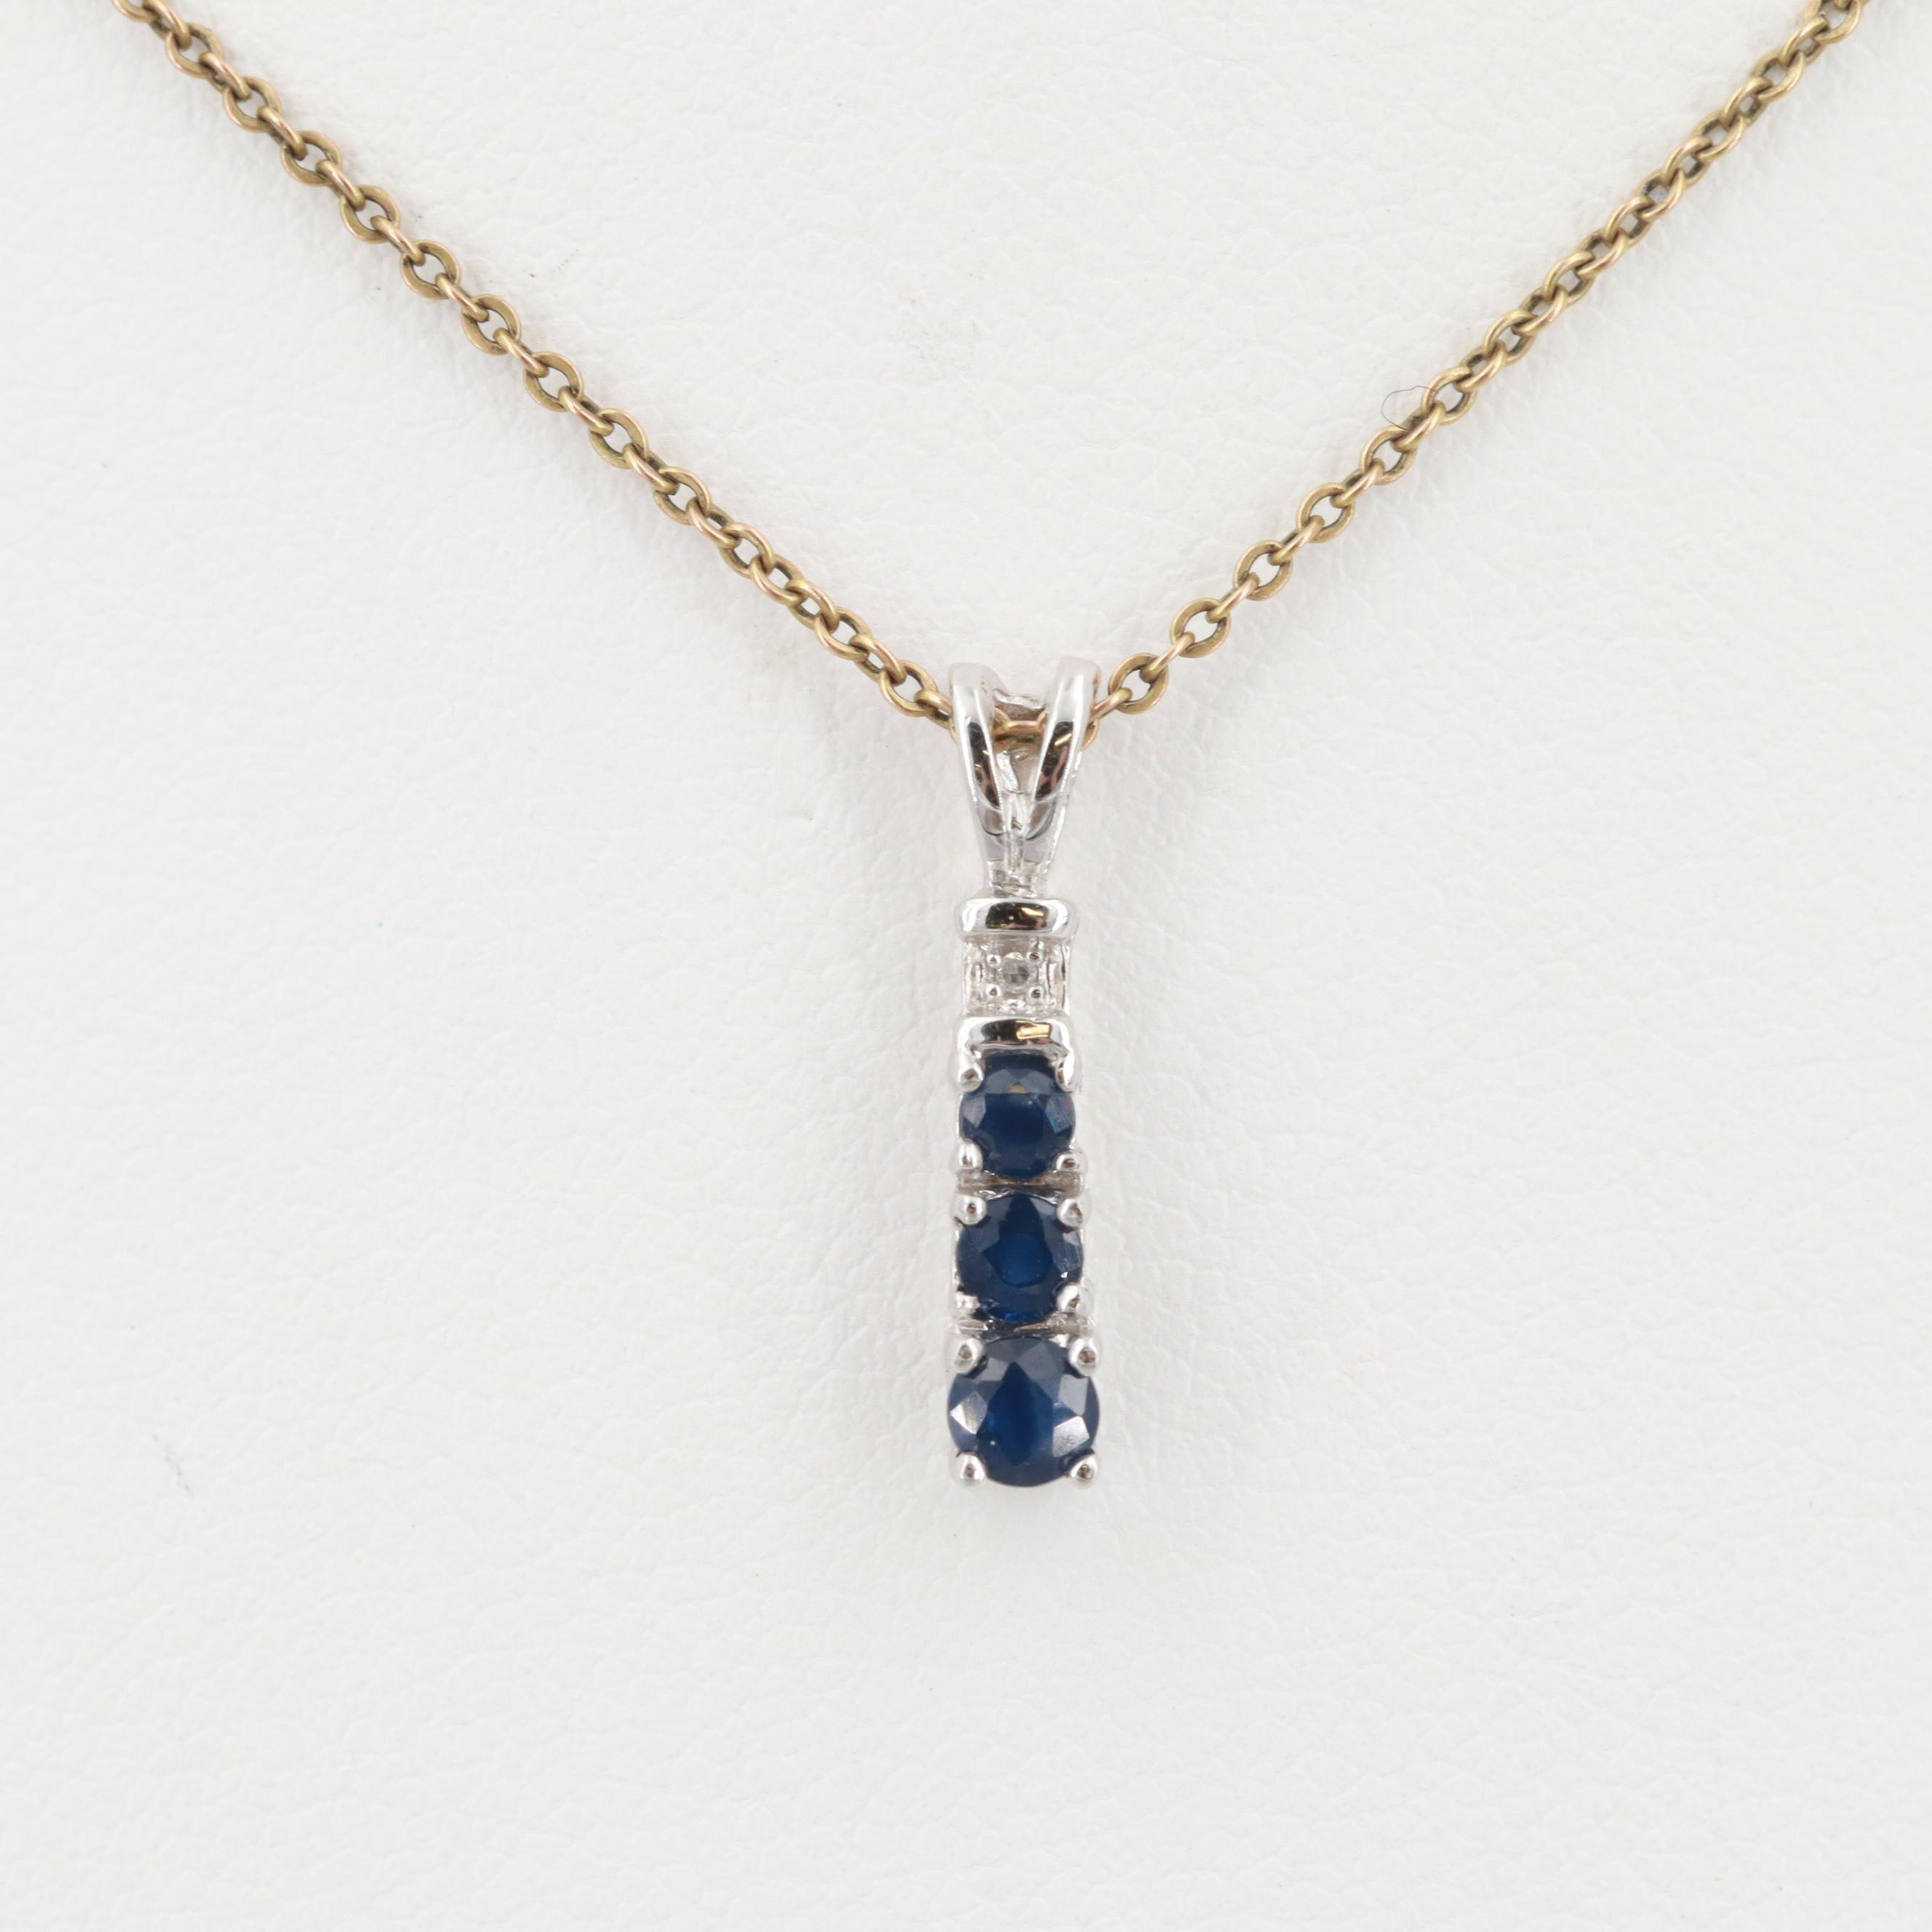 10K White and Yellow Gold Sapphire and Diamond Necklace